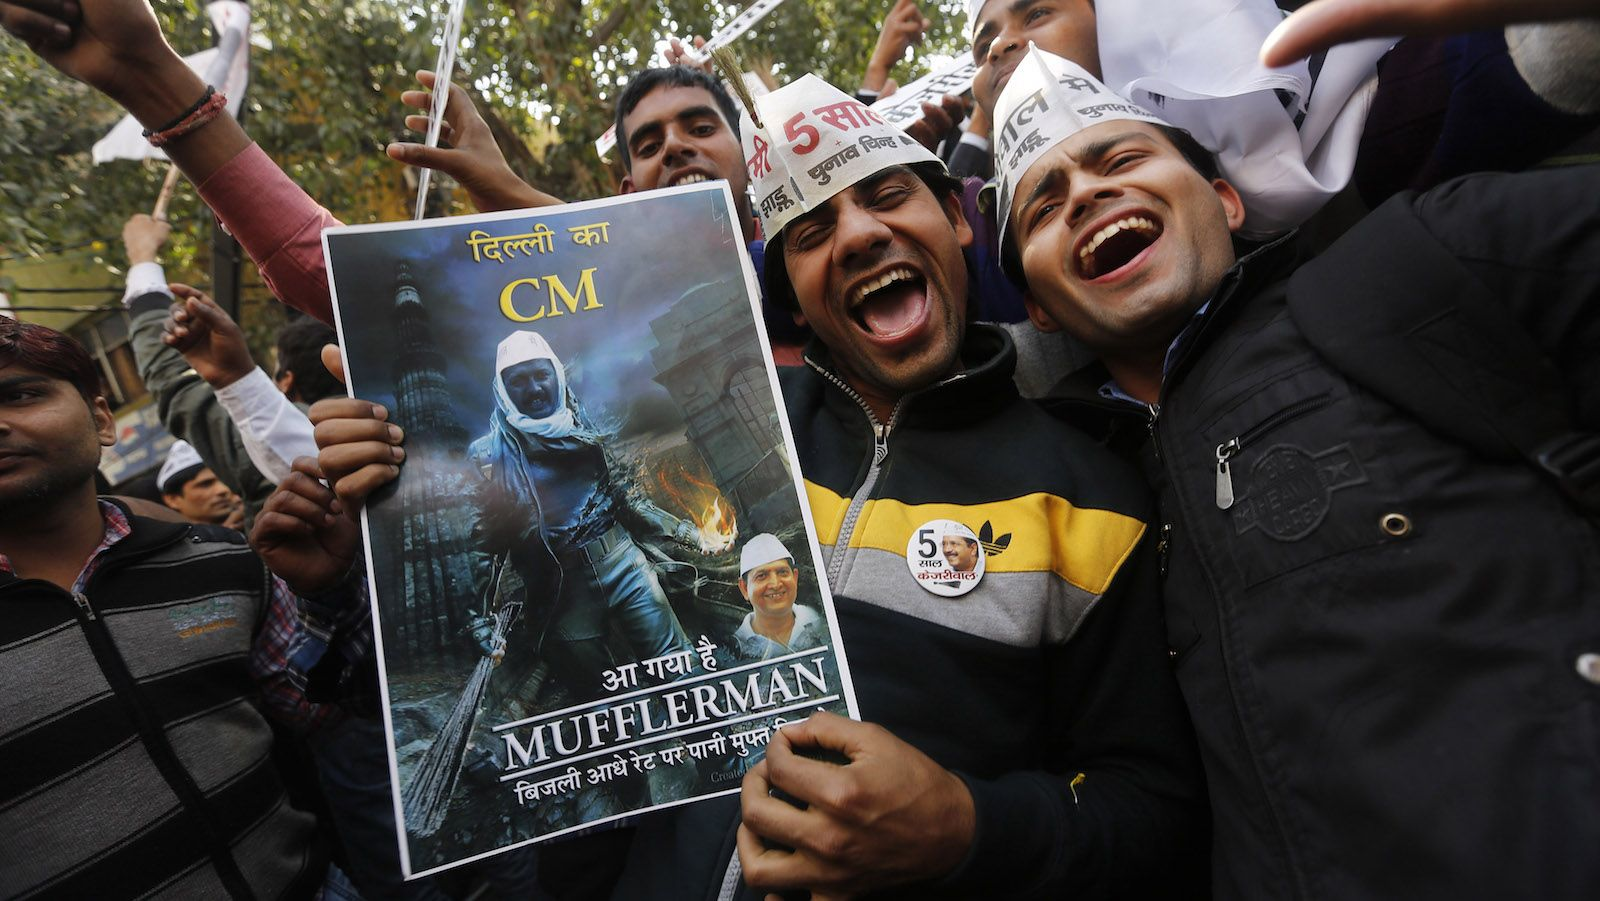 AAP supporters. Credit: Reuters